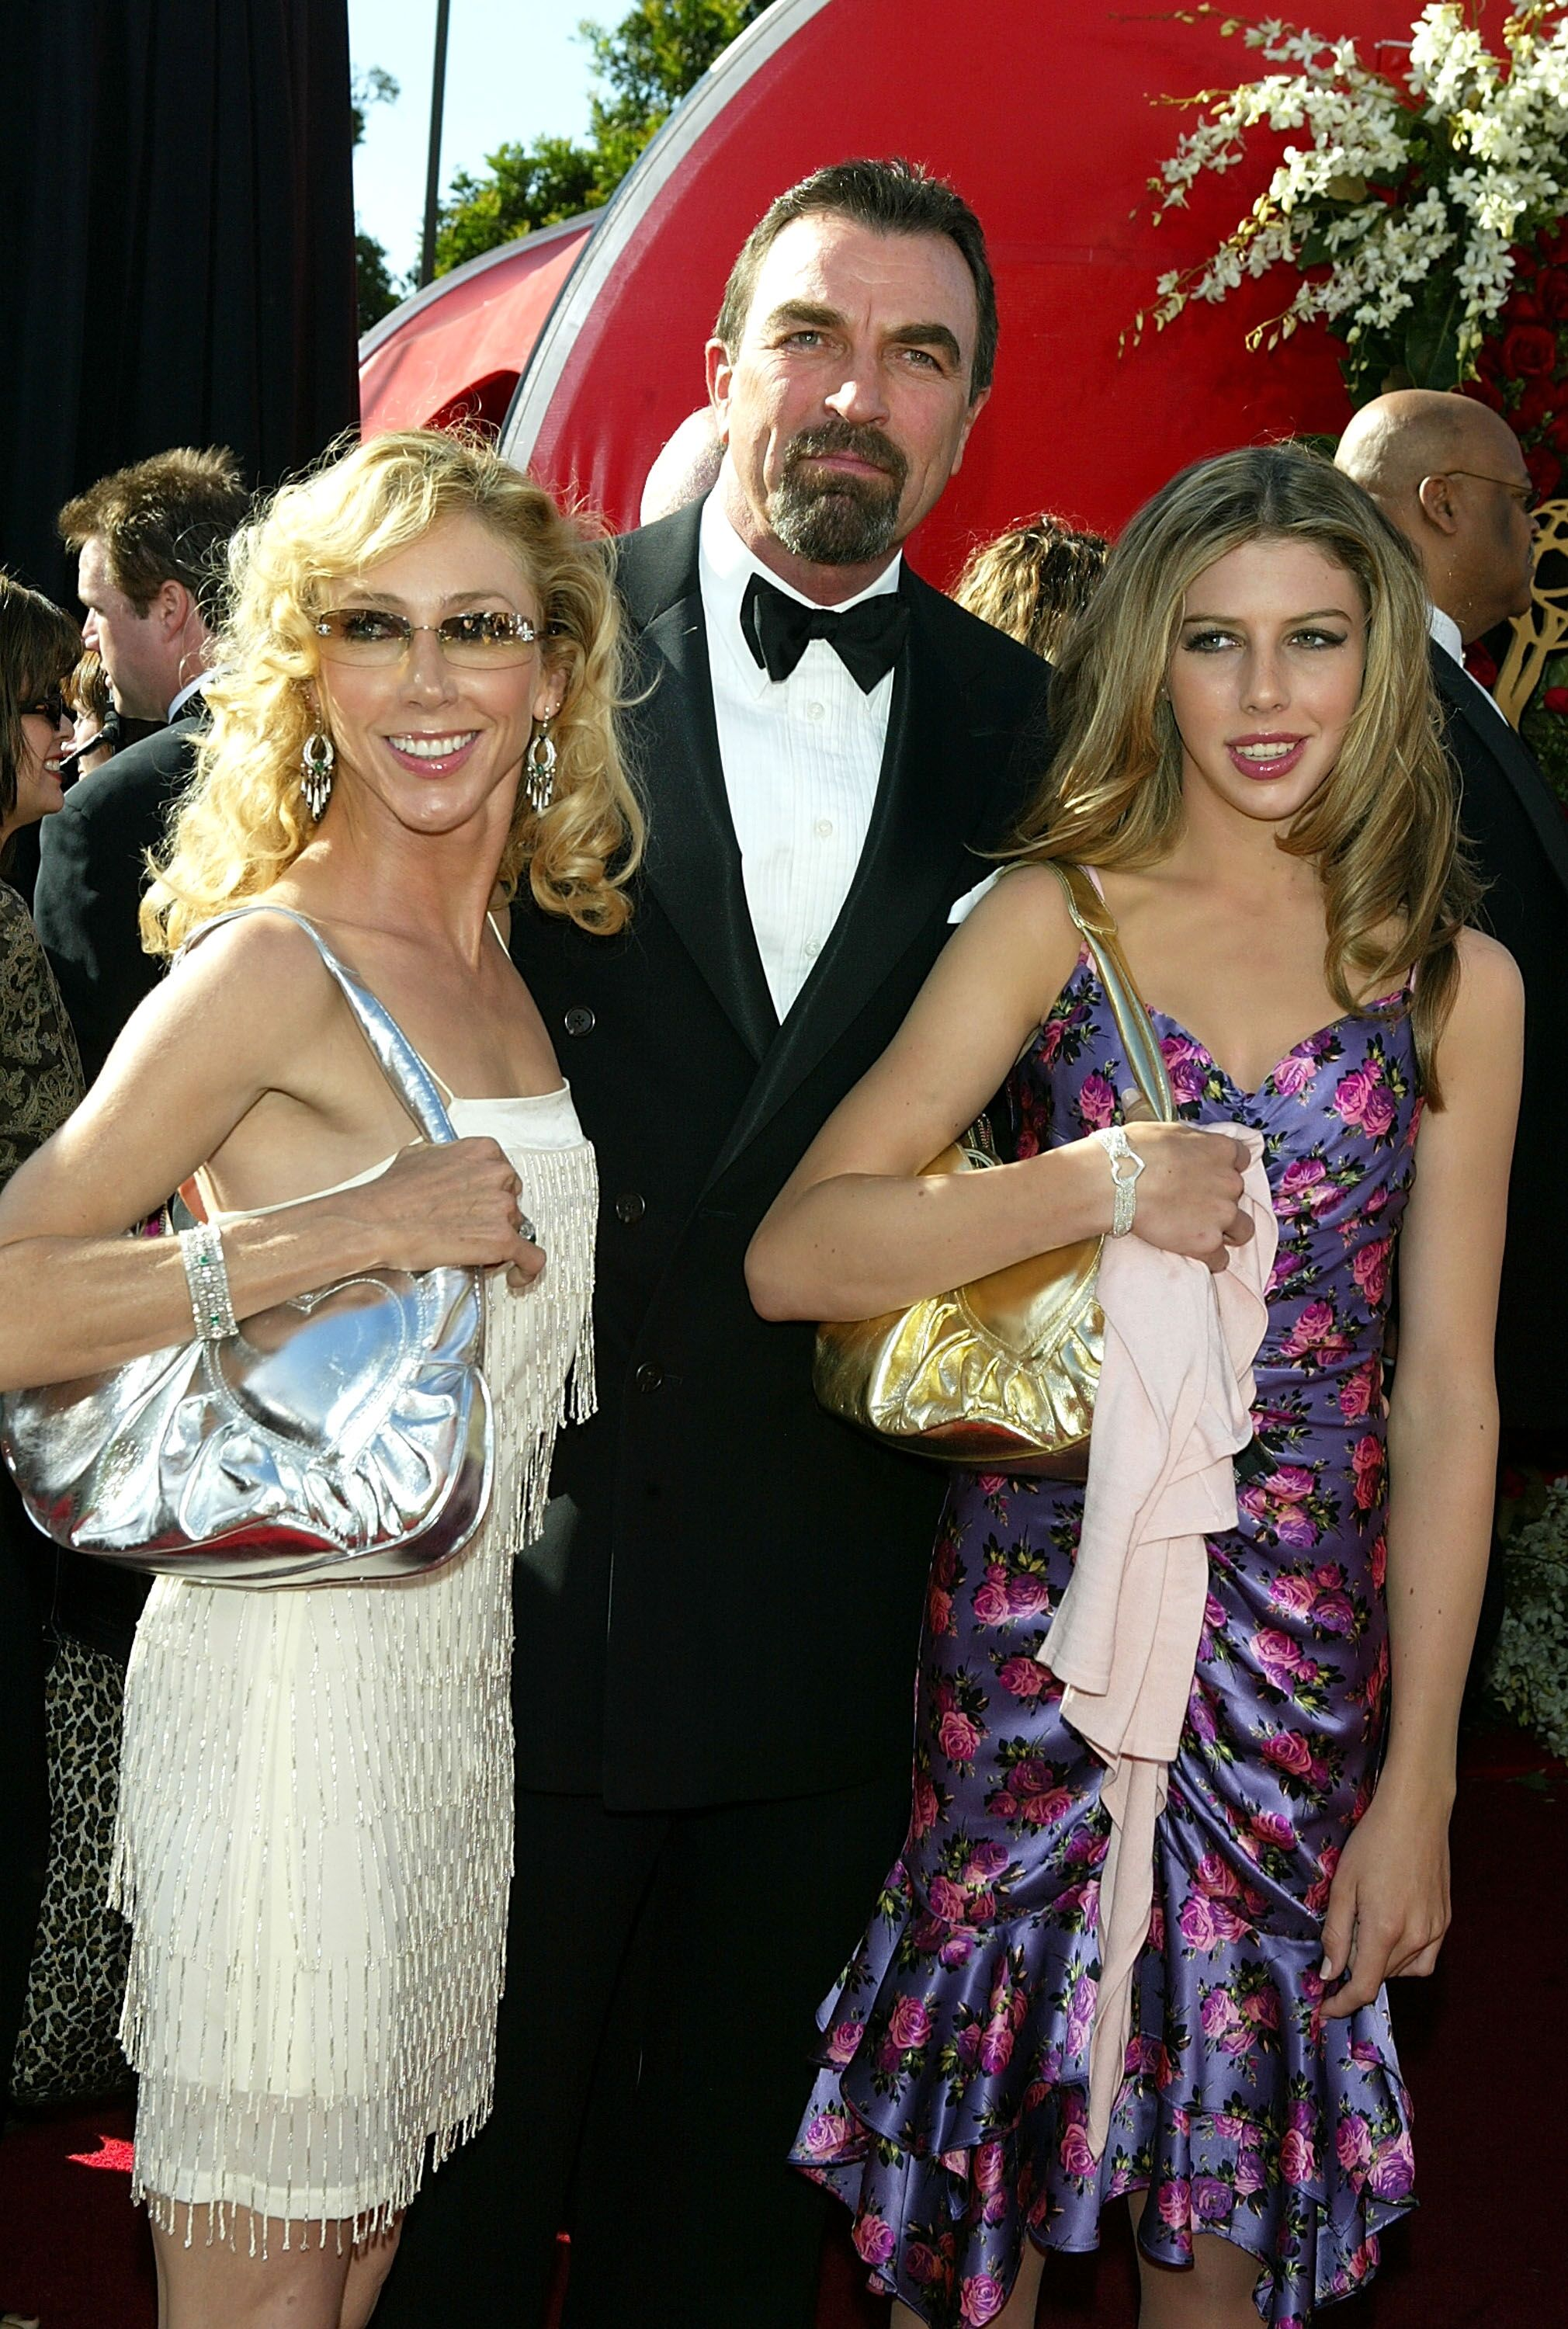 Tom Selleck with wife Jillie and daughter Hannah attends the 56th Annual Primetime Emmy Awards at the Shrine Auditorium | Getty Images / Global Images Ukraine